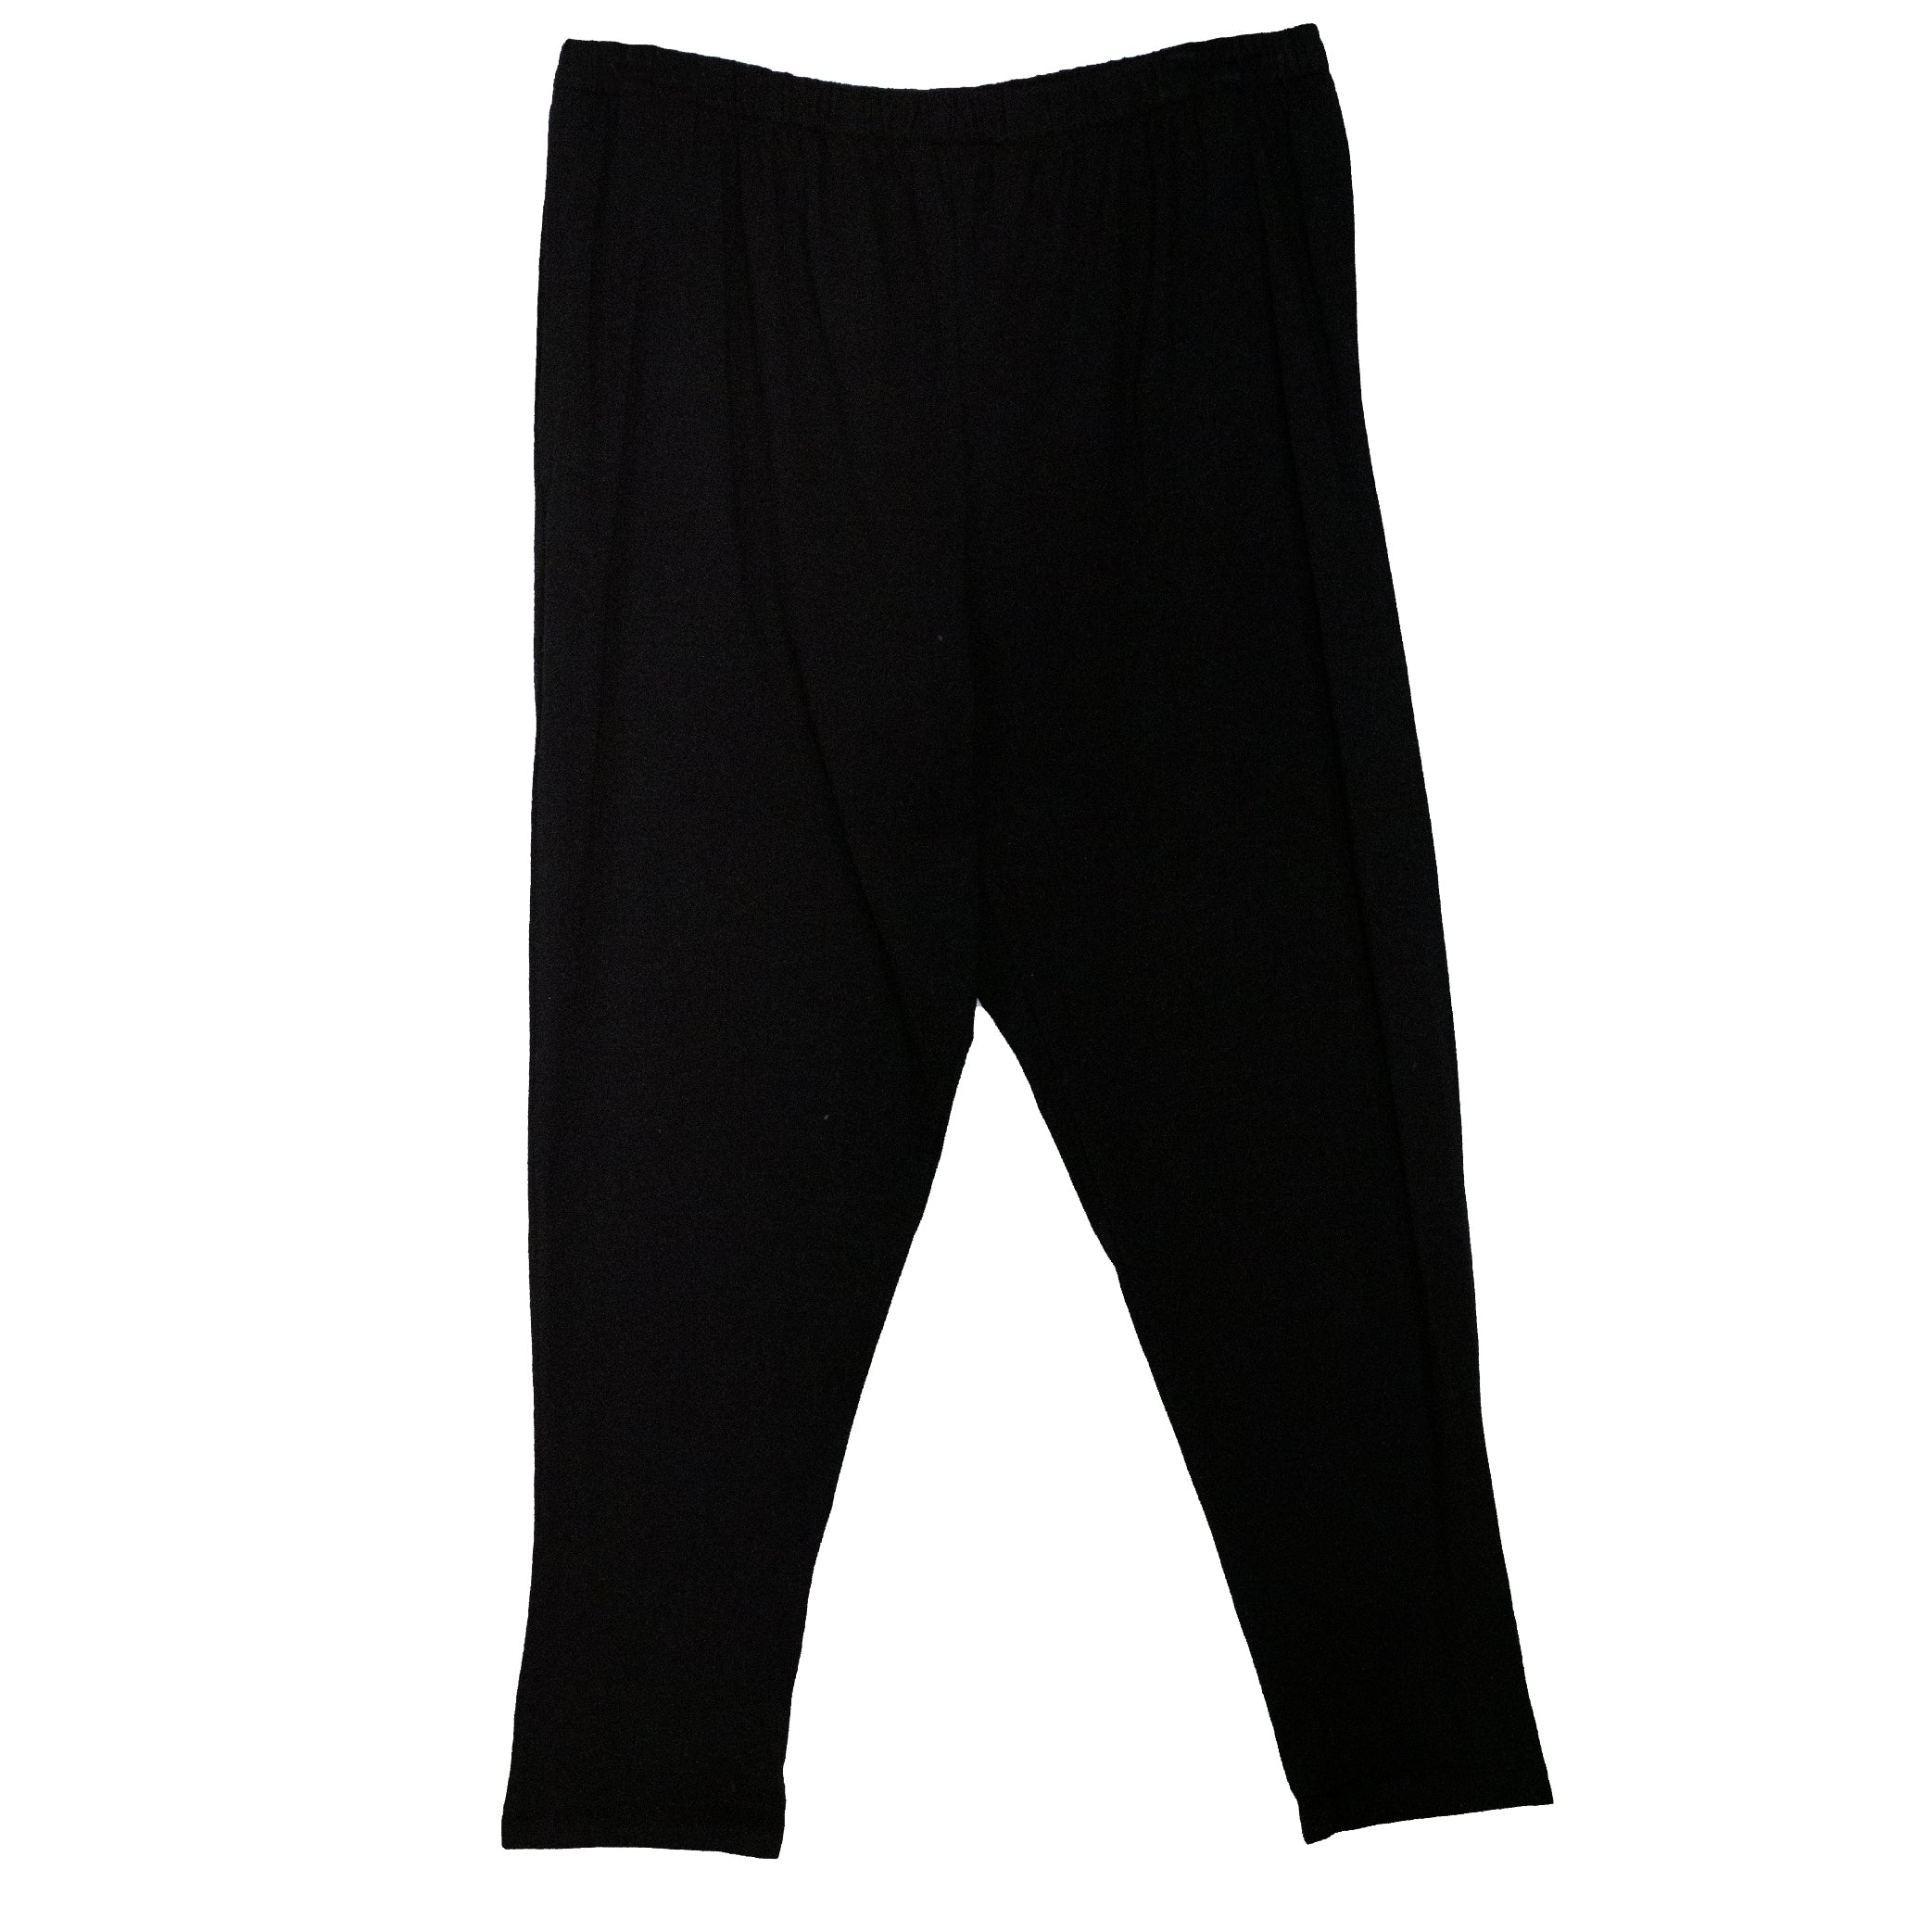 M Square Legging Pants, Black